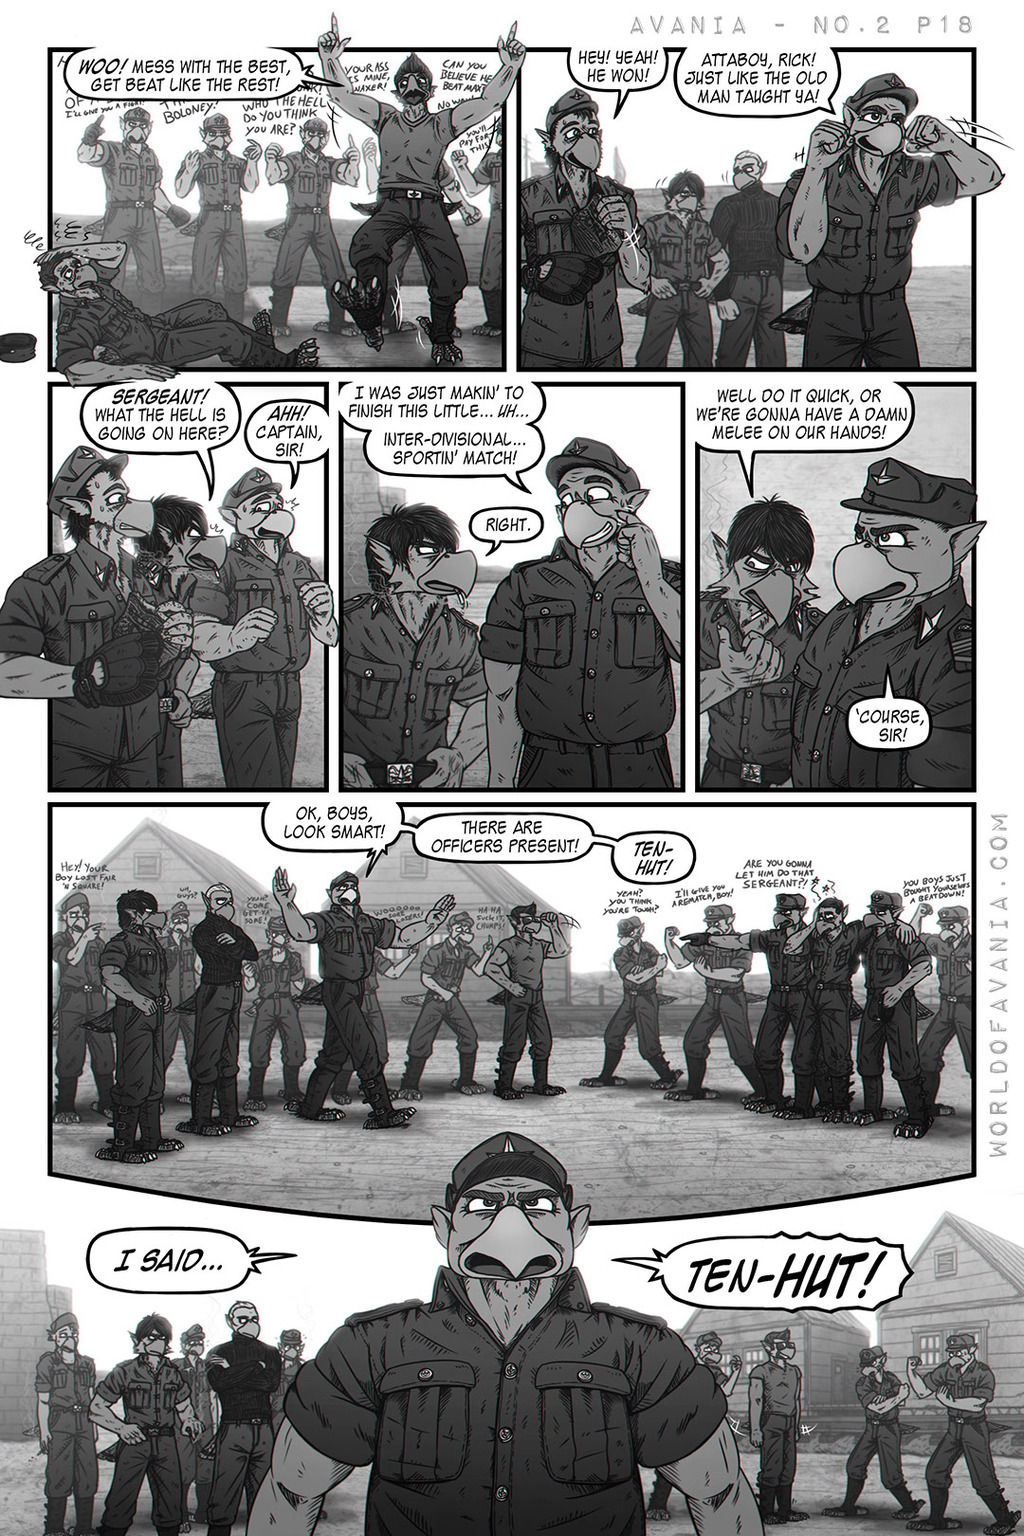 Avania Comic - Issue No.2, Page 18